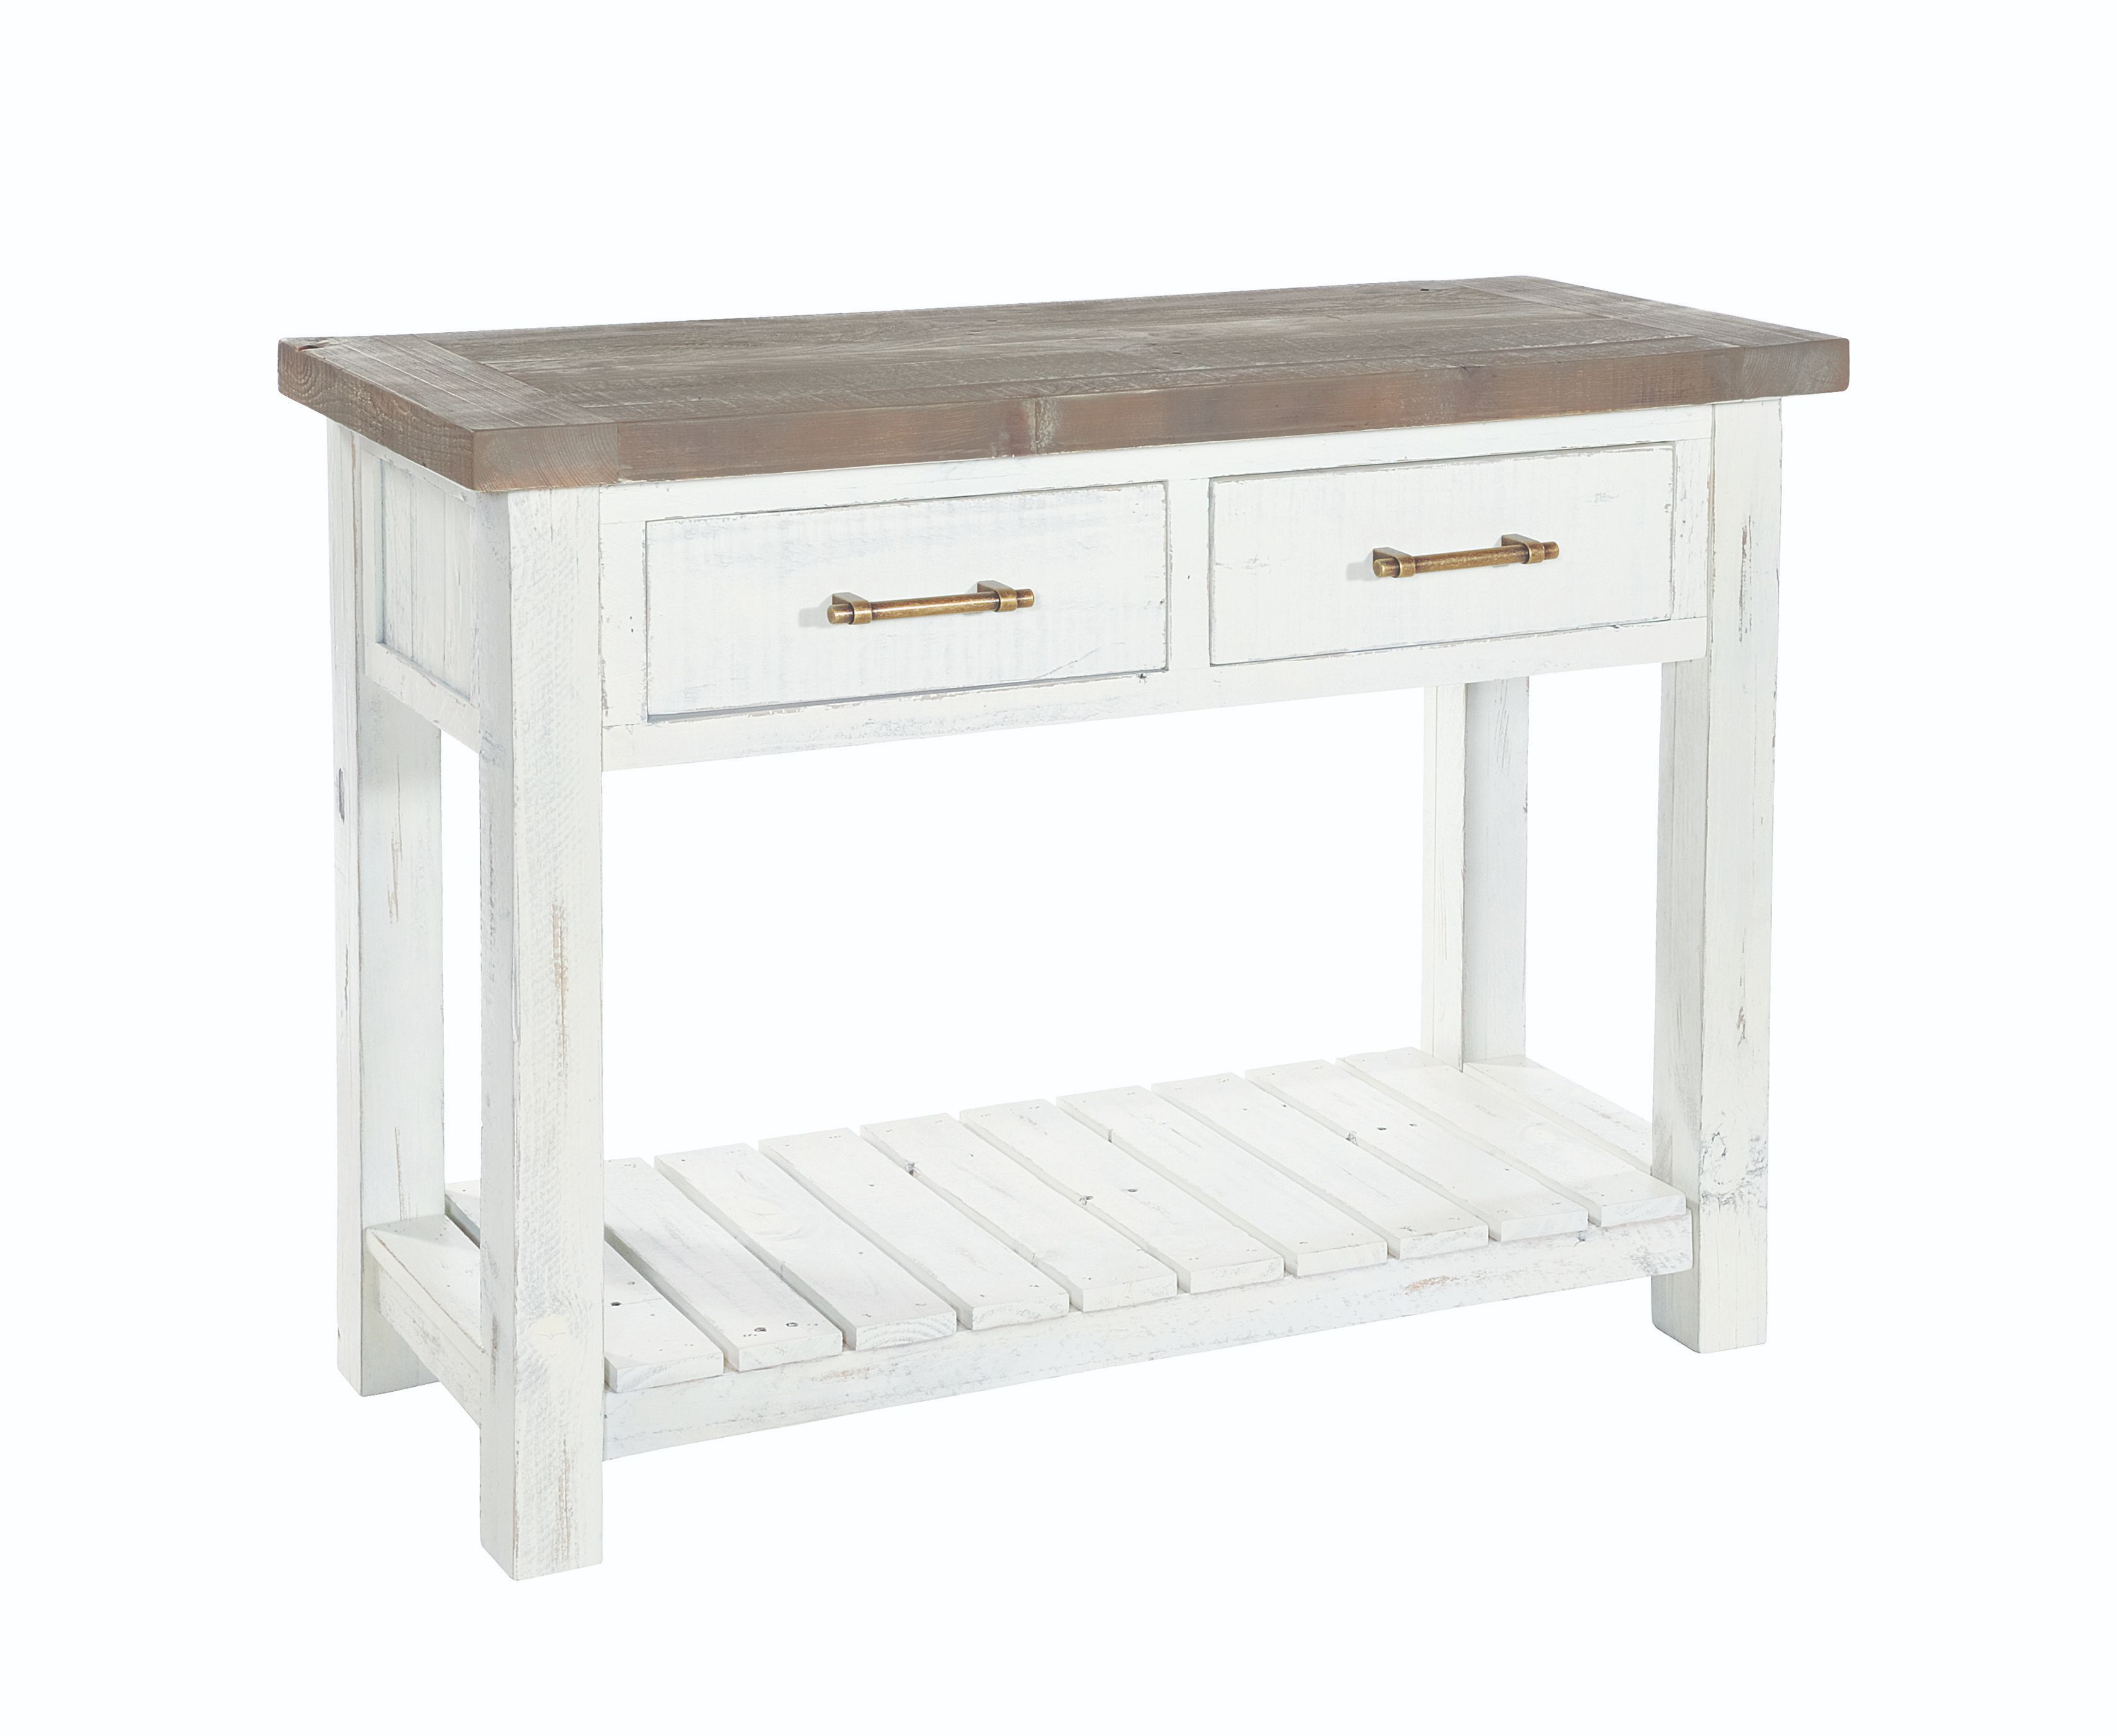 PURBECK CONSOLE TABLE Distressed Paint & Driftwood